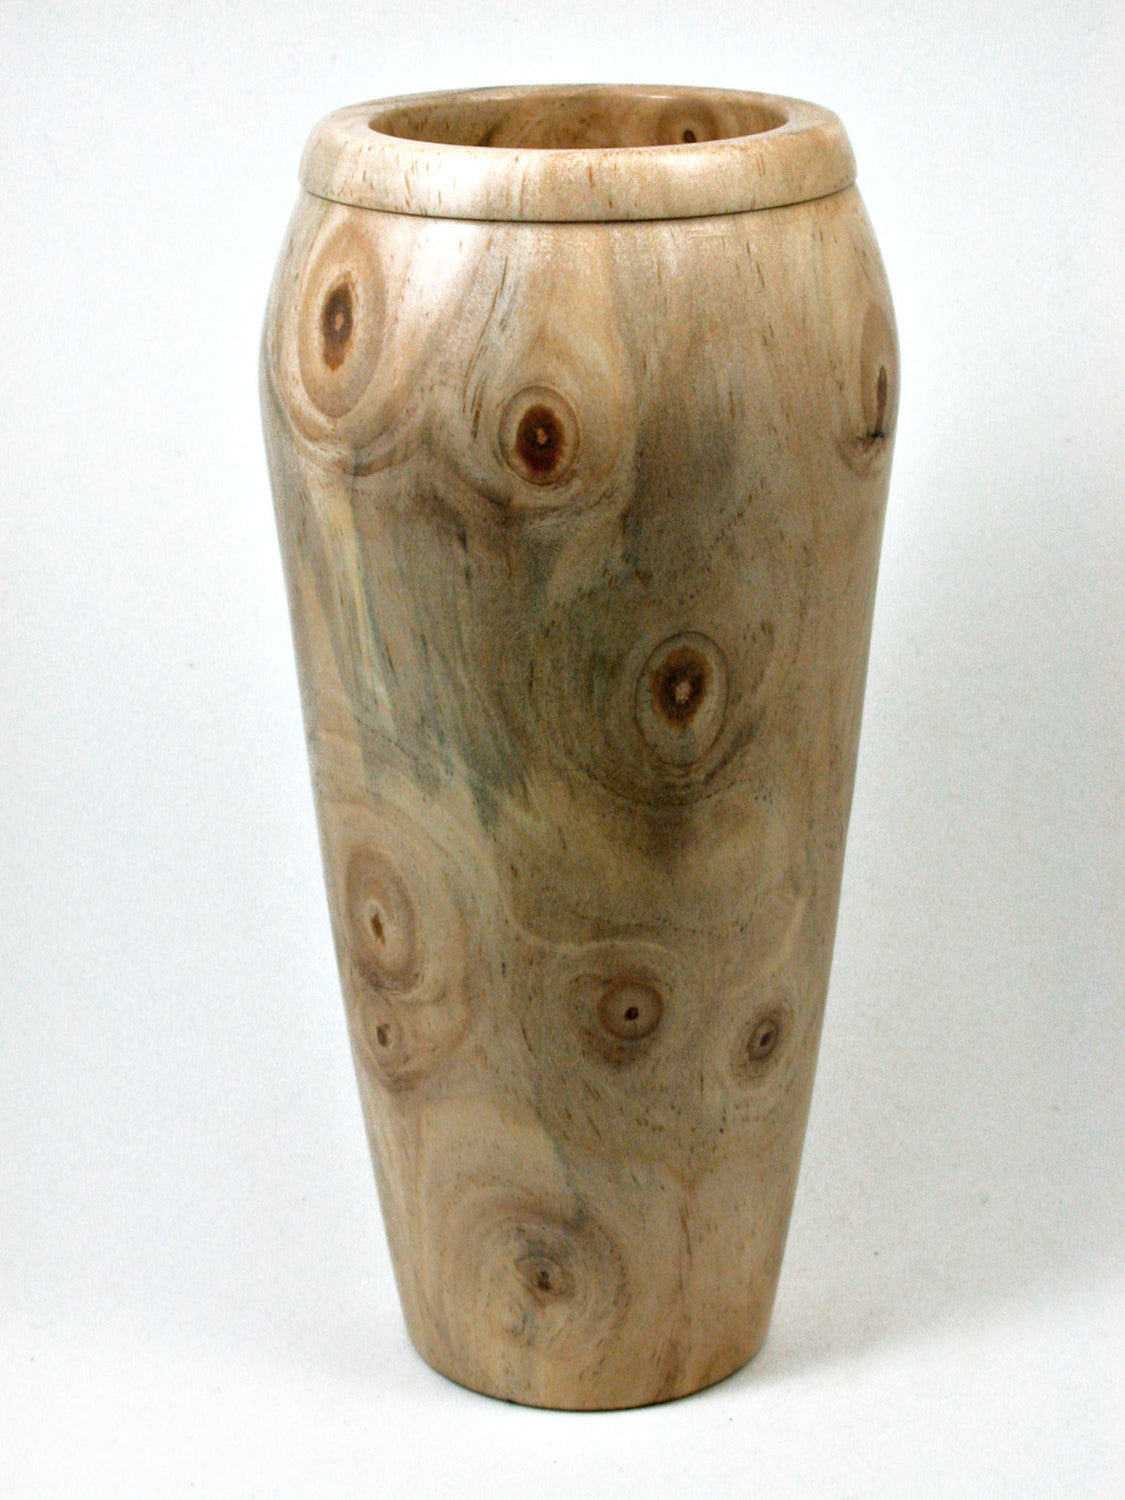 LV-1980  Extremely Knotty Italian Stone Pine Hand Turned Wooden Weed Pot, Tall Vase, Vessel